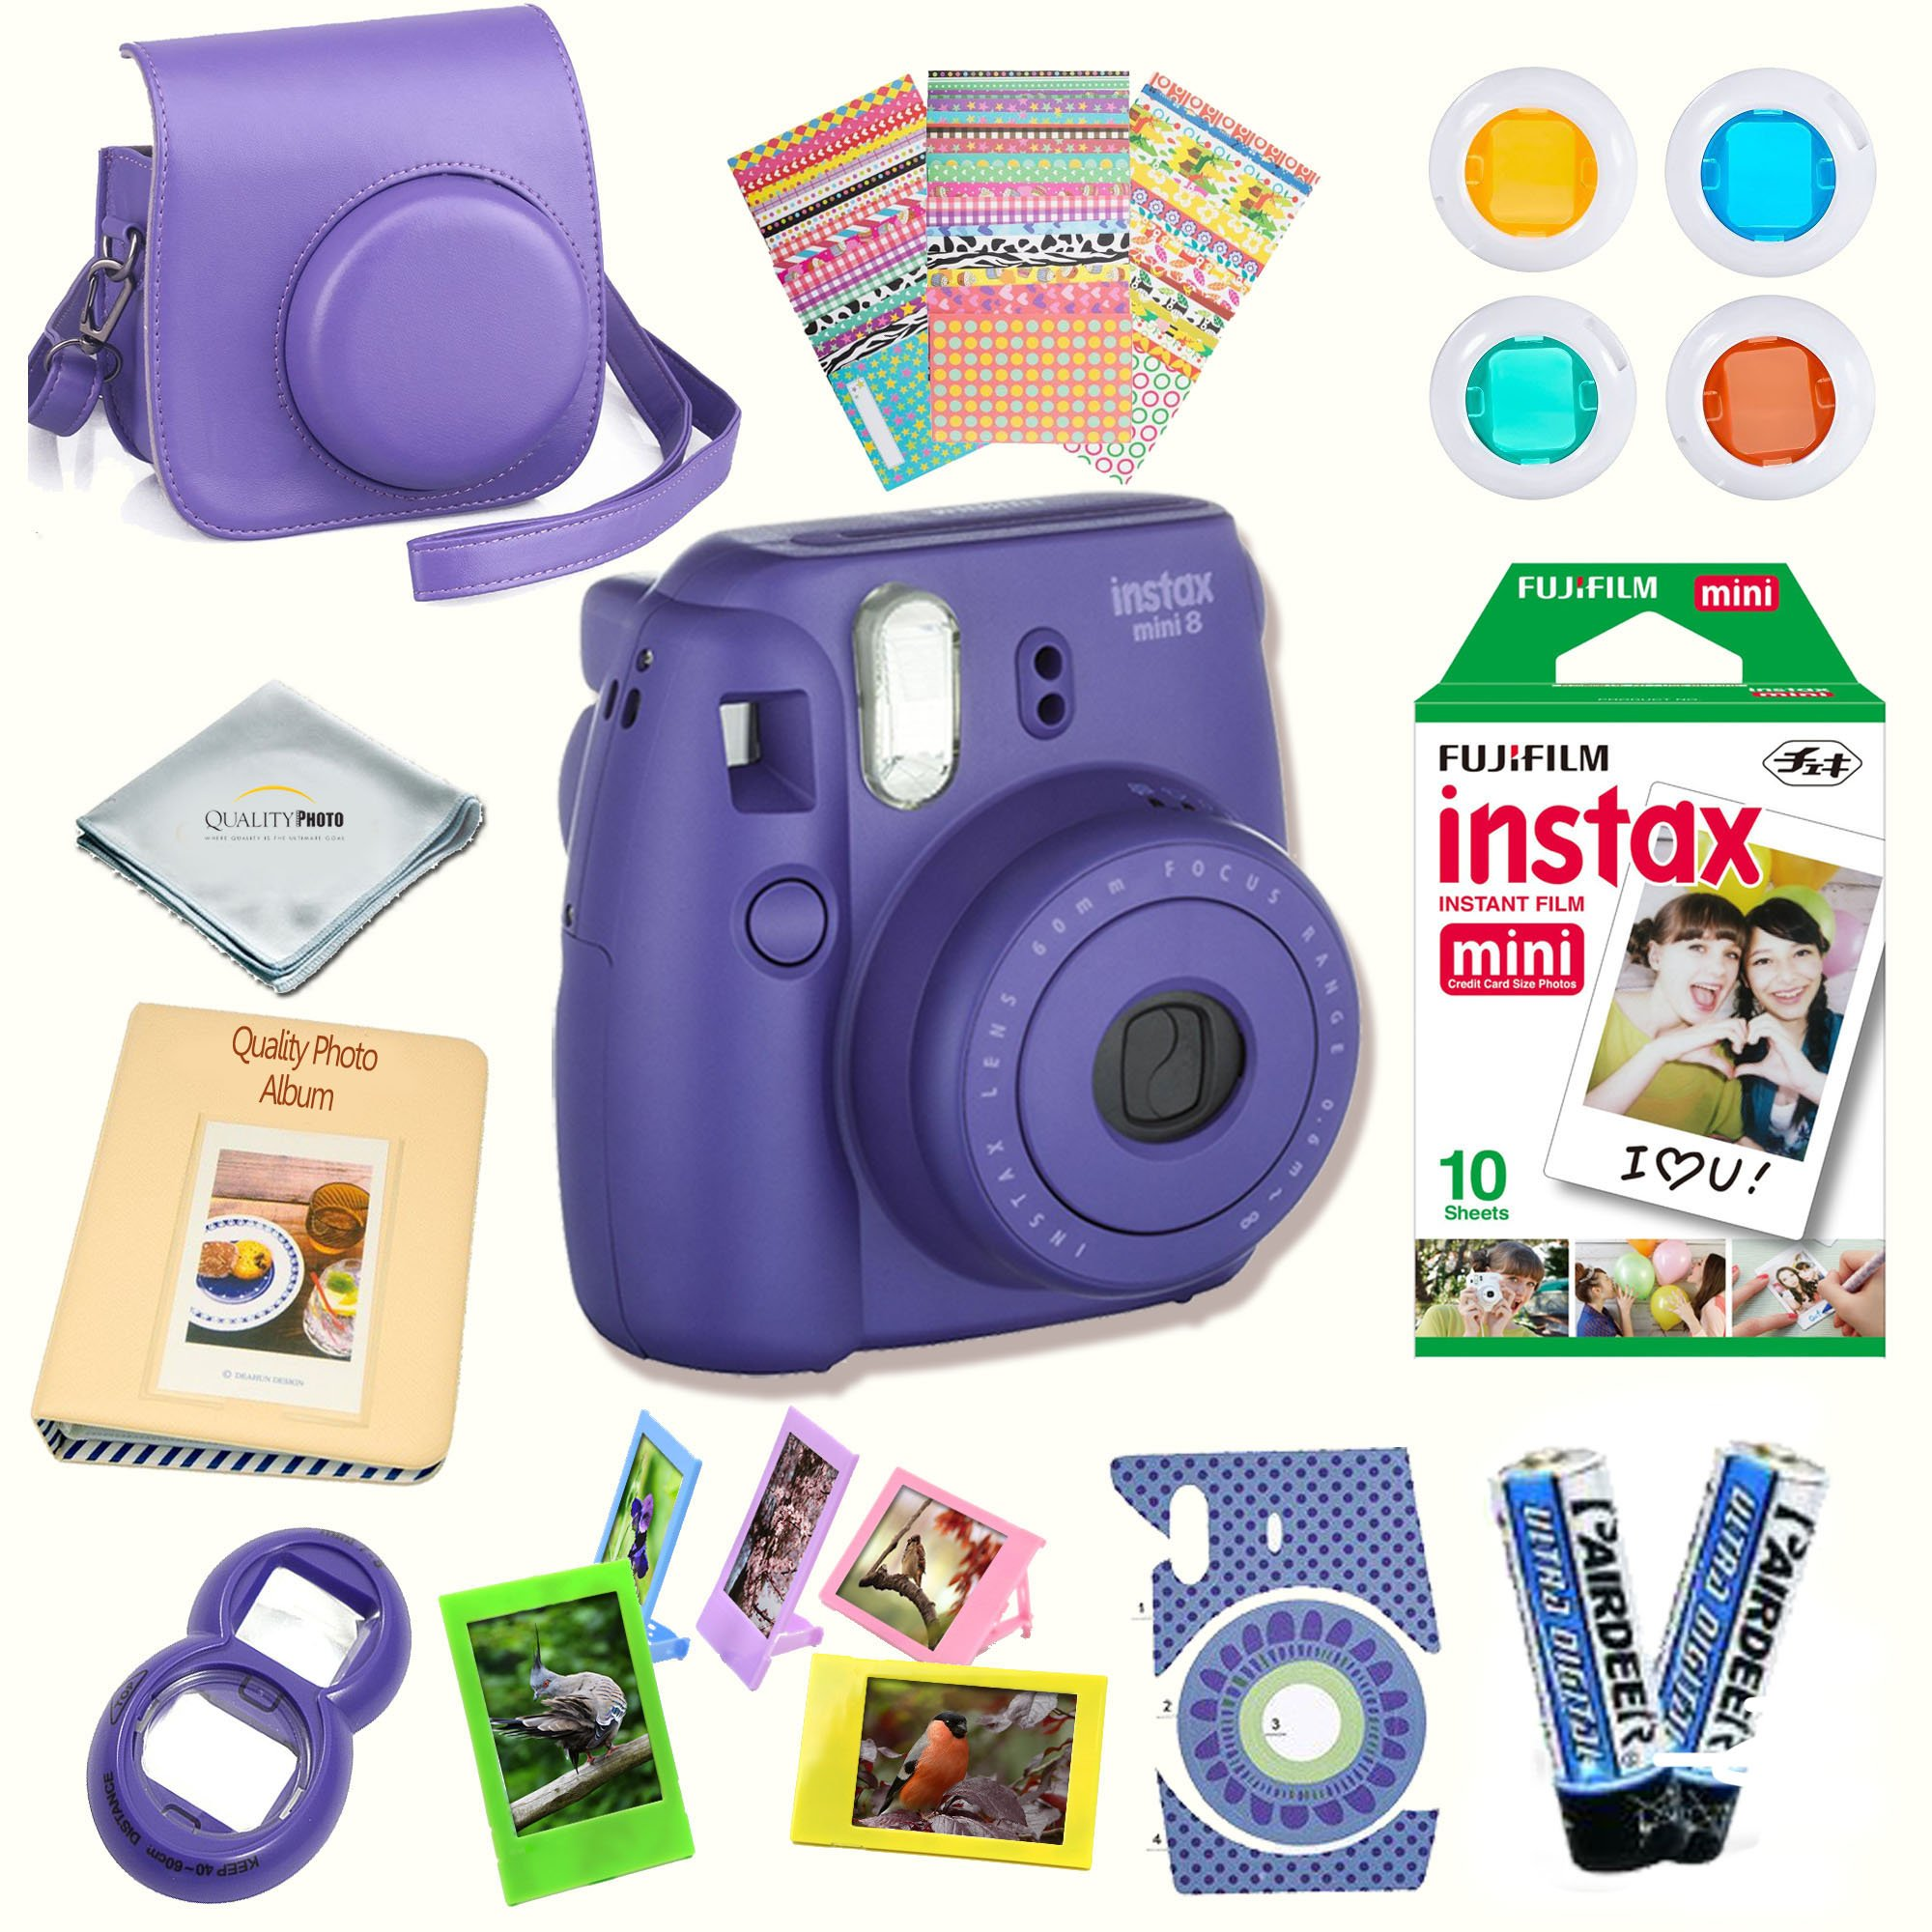 Fujifilm Instax Mini 8 Camera + Fuji INSTAX Instant Film (10 SHEETS) + 14 PC Instax Accessories kit Bundle, Includes; Instax Case + Album + Frames & Stickers + Lens Filters + MORE (Grape) by Fujifilm